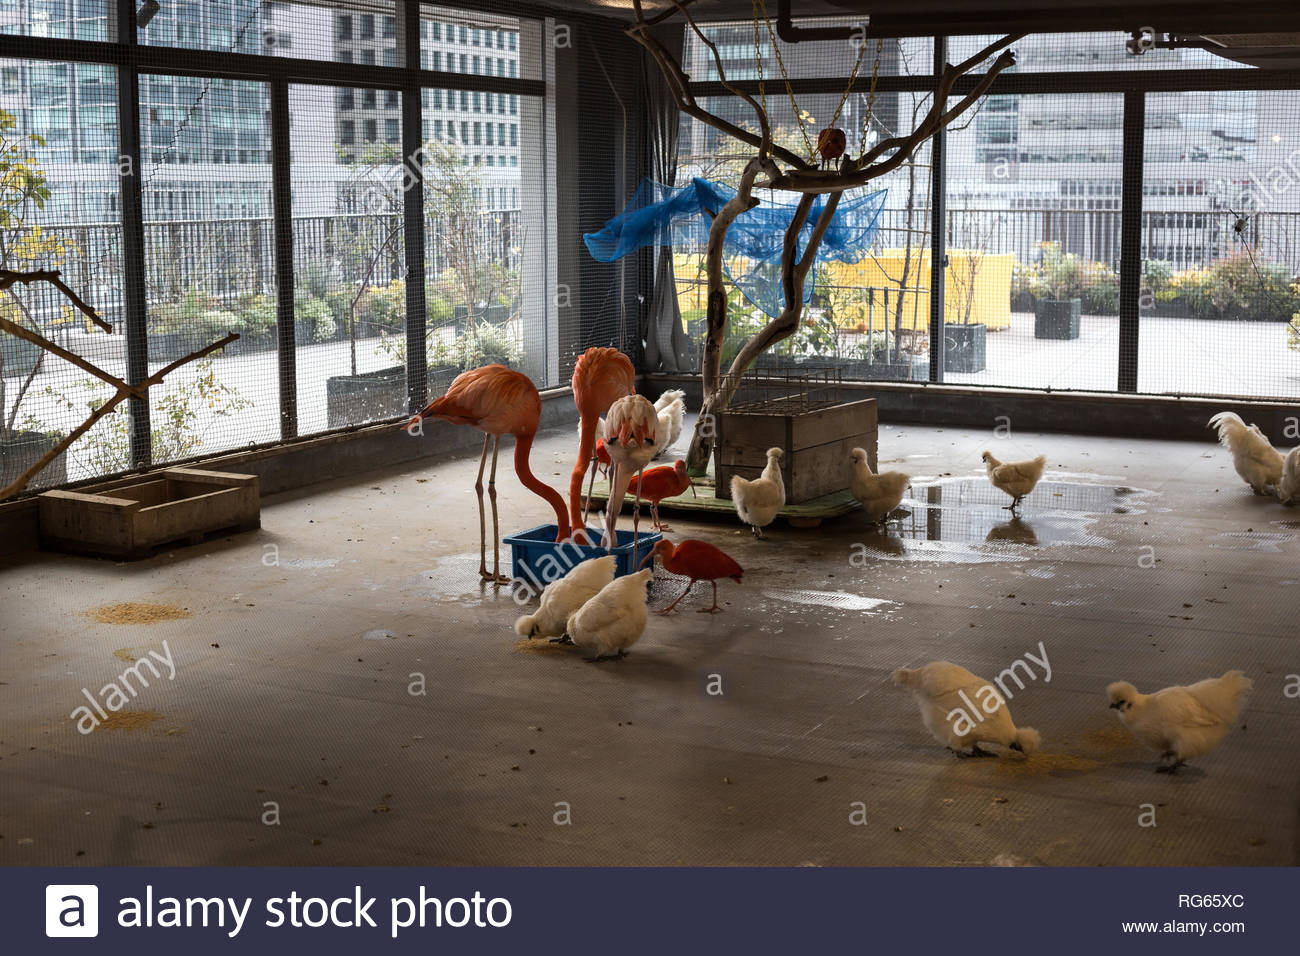 inside a pasona building on a winter day. - Stock Image